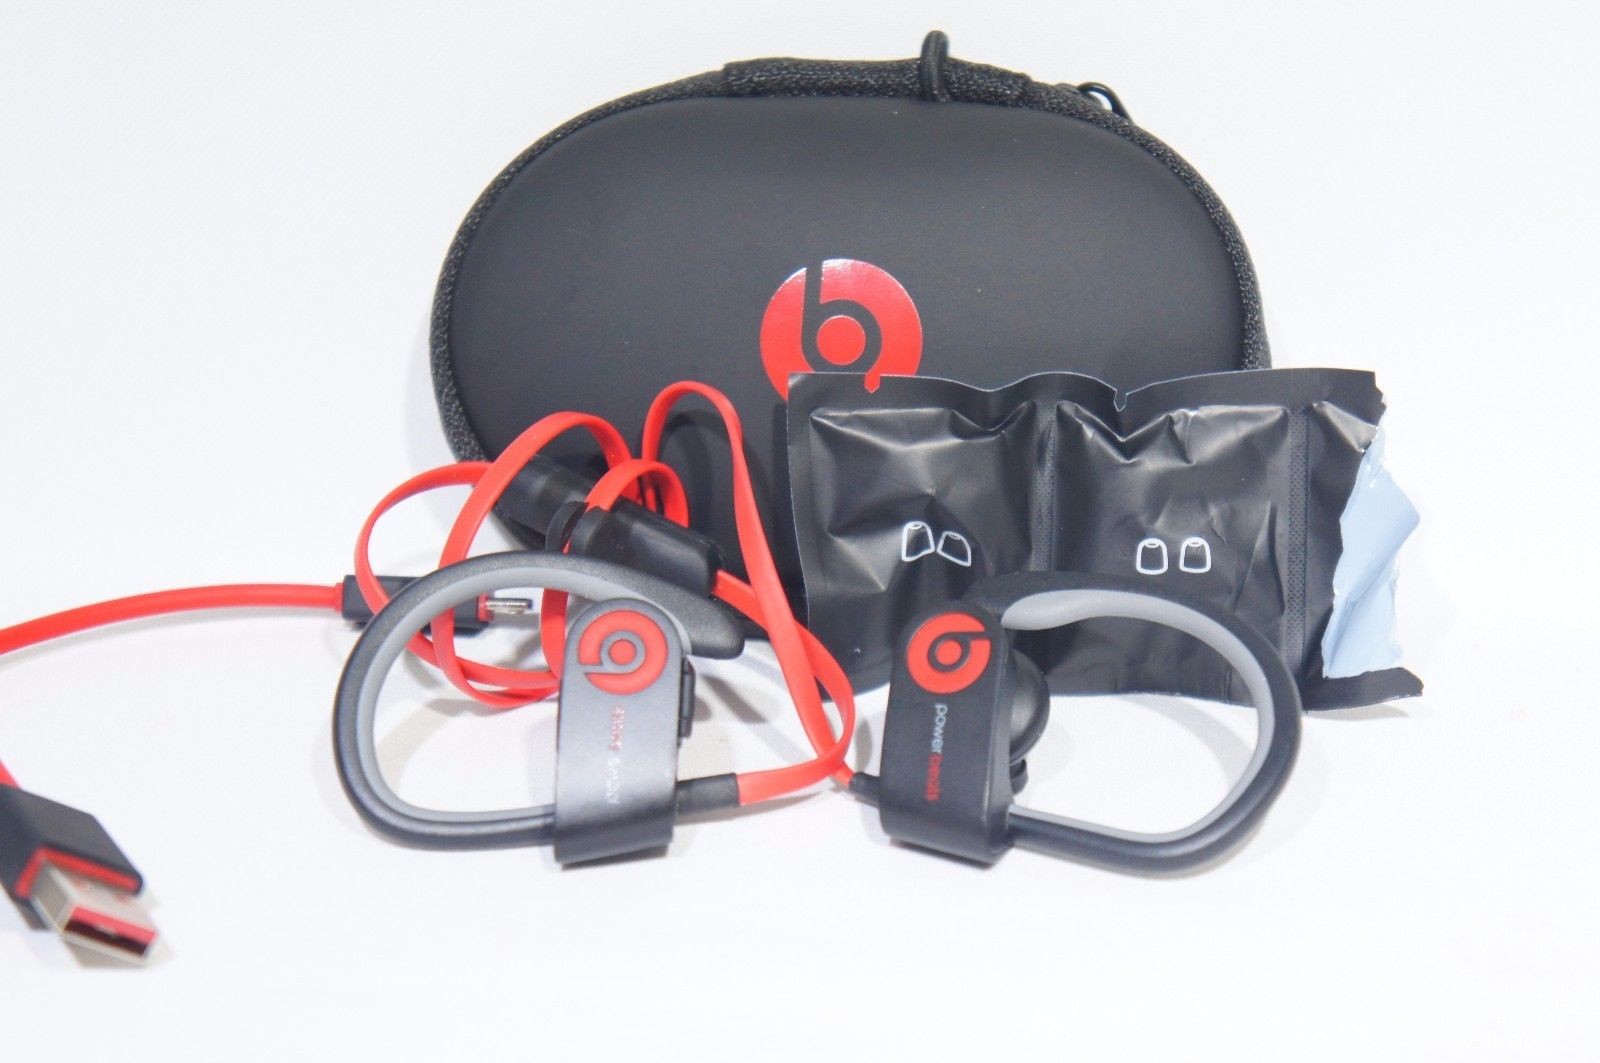 Powerbeats2 Beats Wireless In-Ear Headphone Black & Red (Like New)